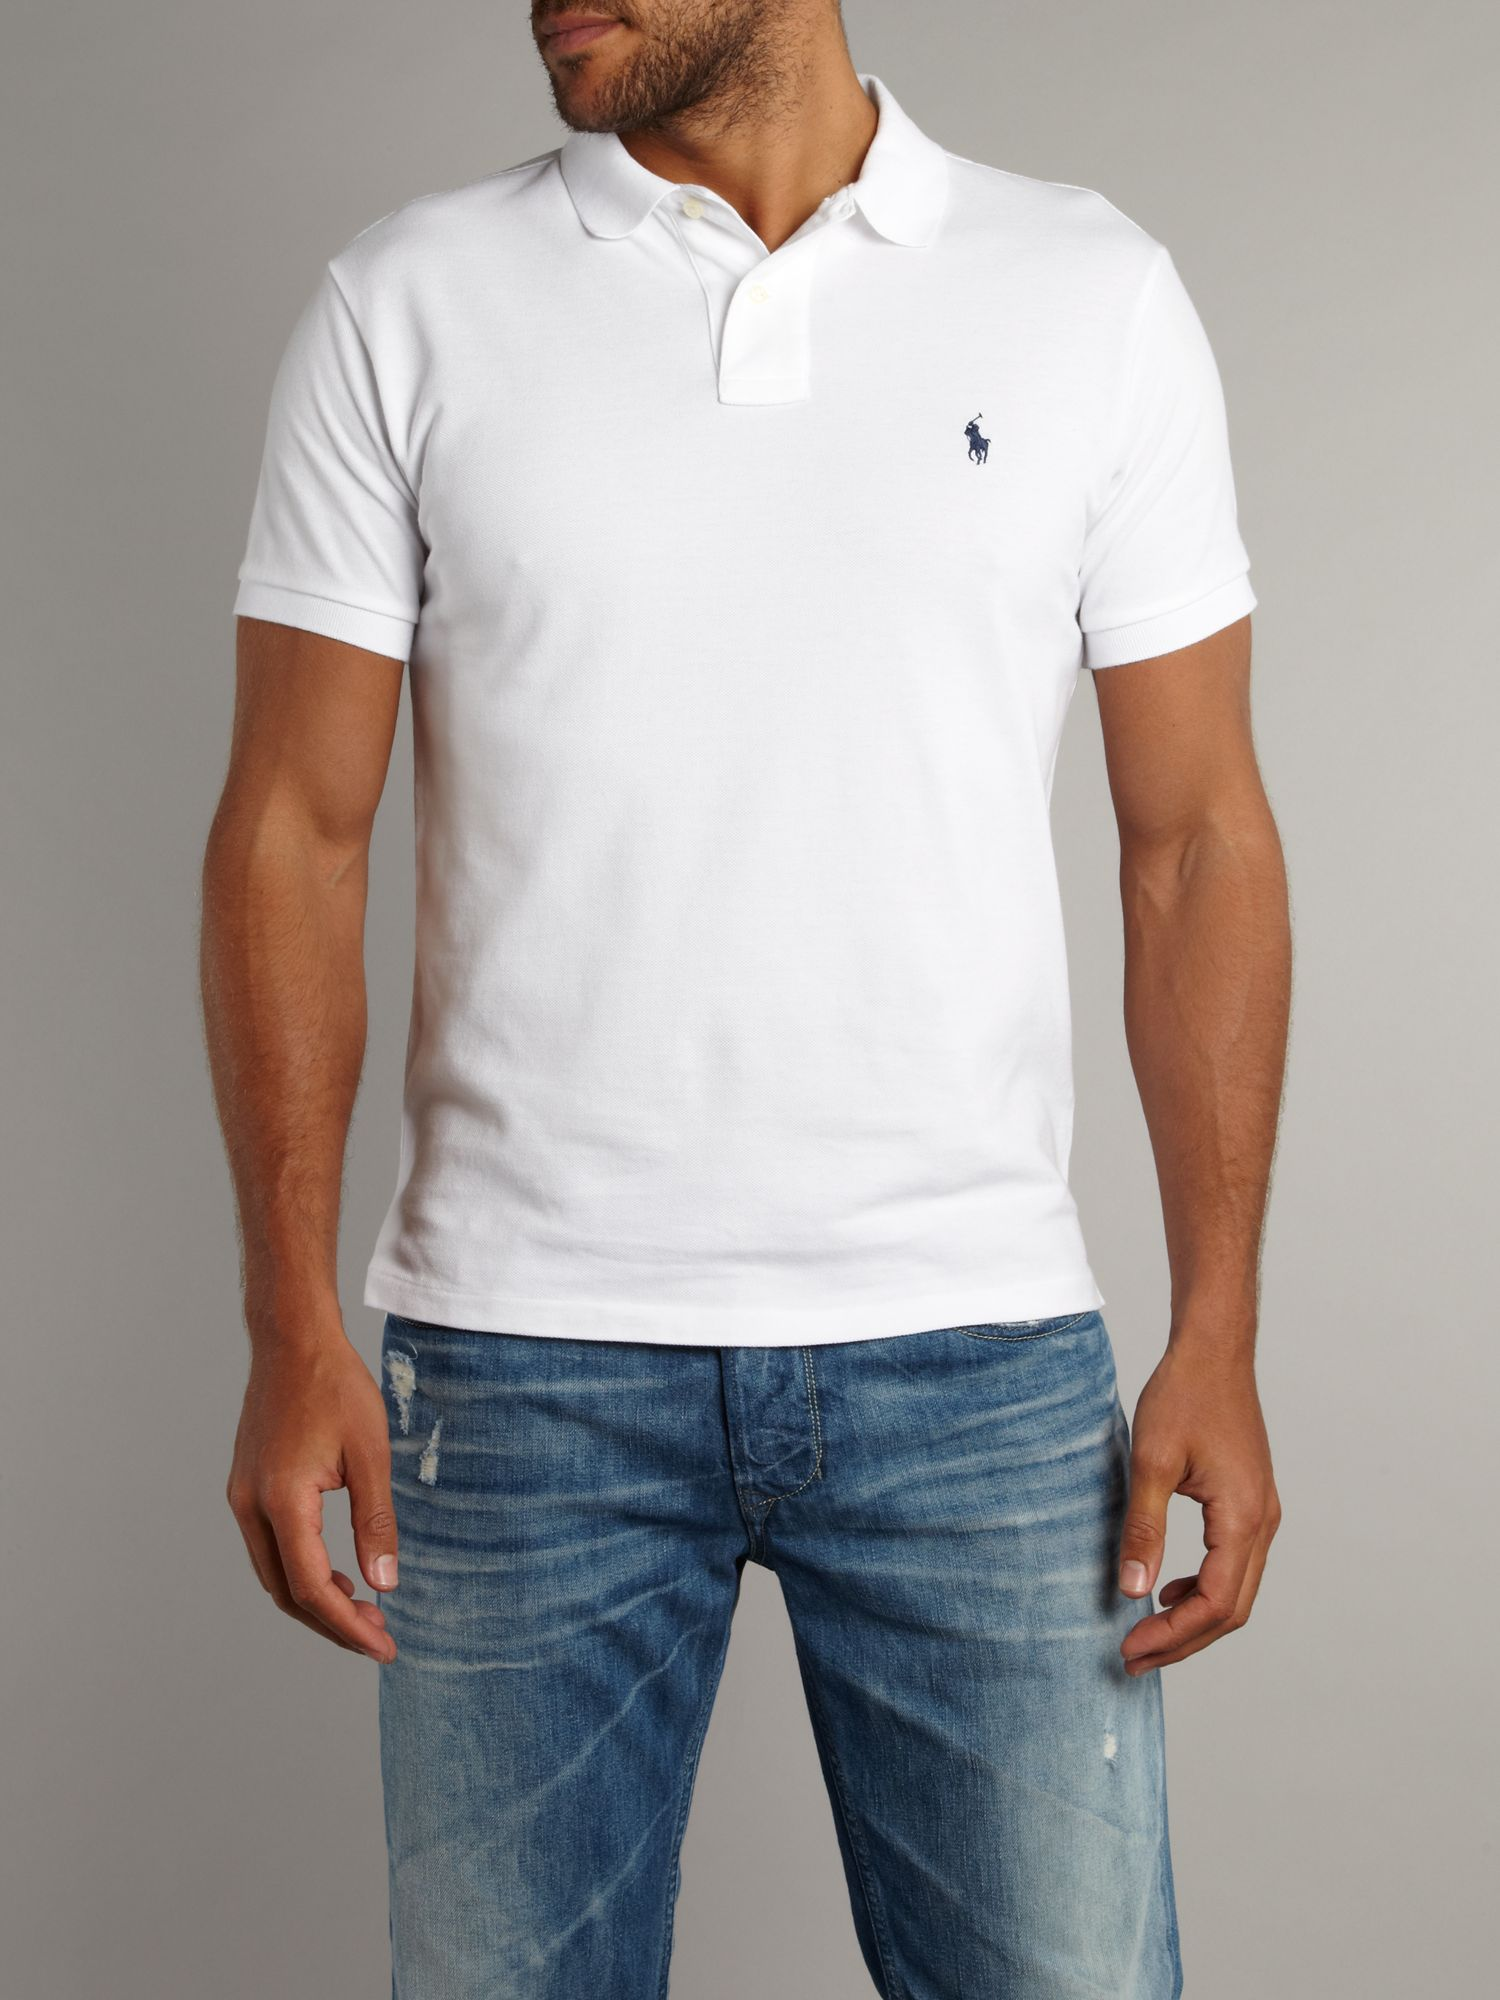 ralph lauren house polo ralph lauren shirts